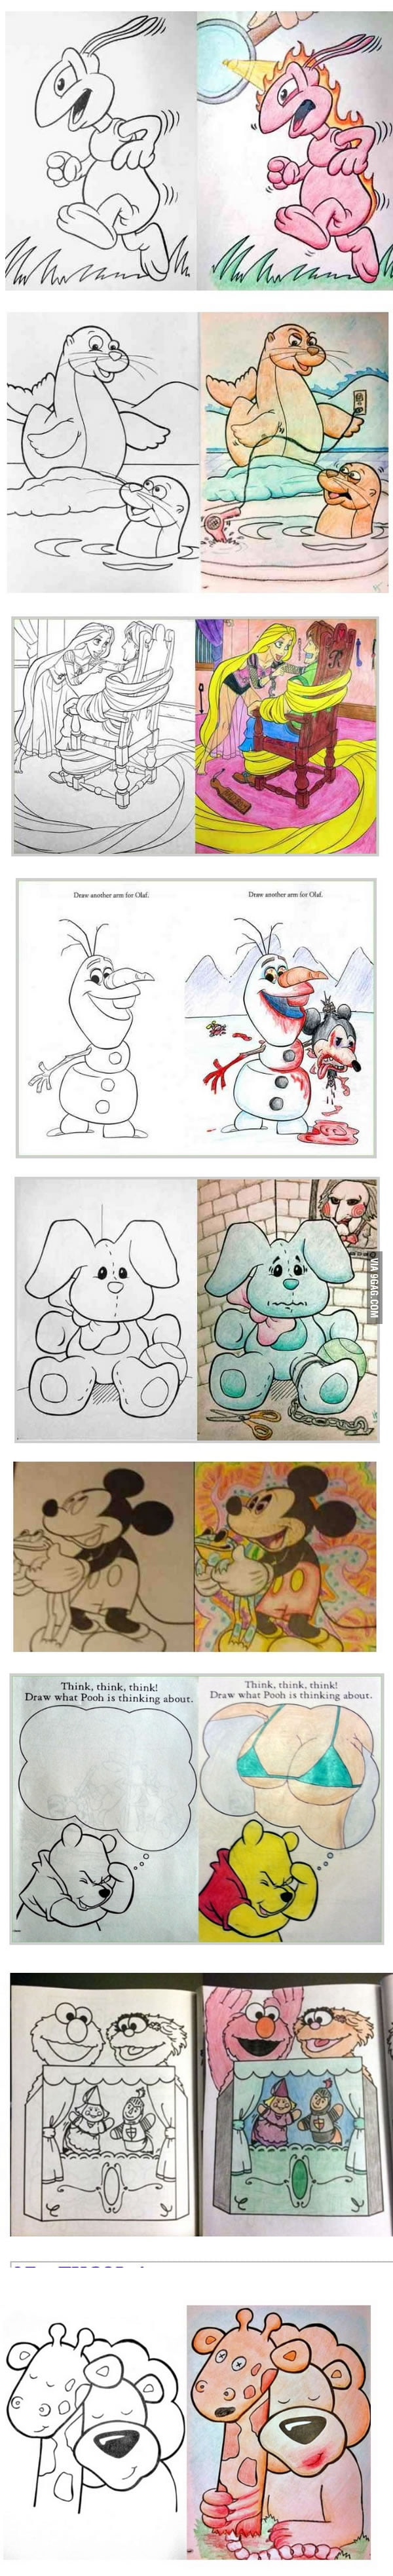 Hilarious Coloring Book Drawings